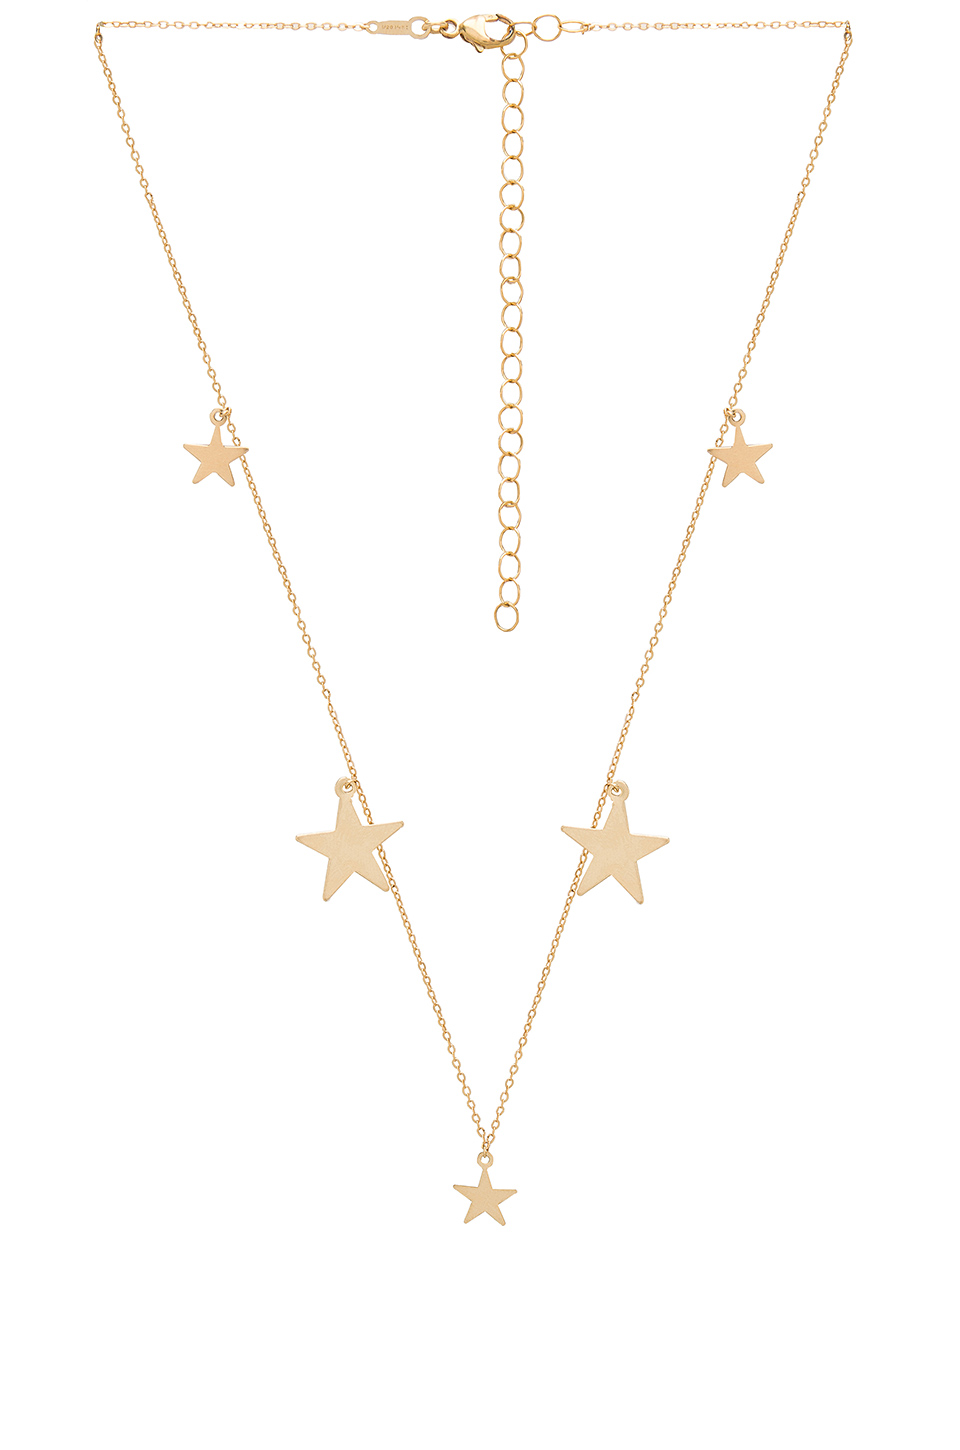 ERTH Multi Star Necklace in Gold